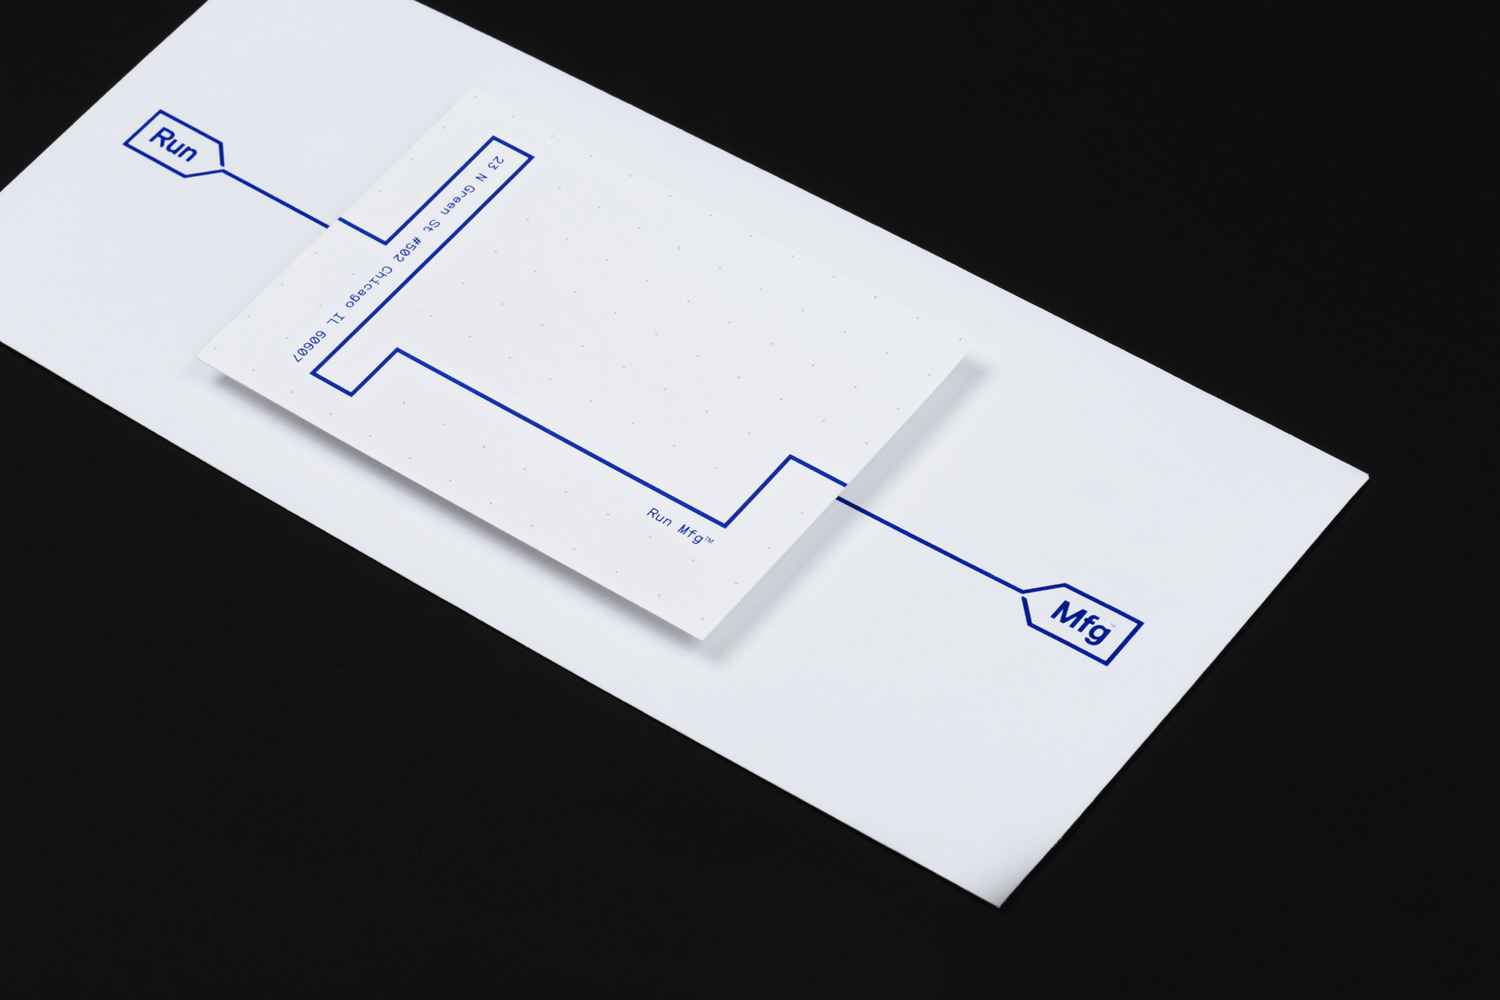 Brand identity and stationery by Perky Bros for Chicago-based independent race design and production company Run Mfg